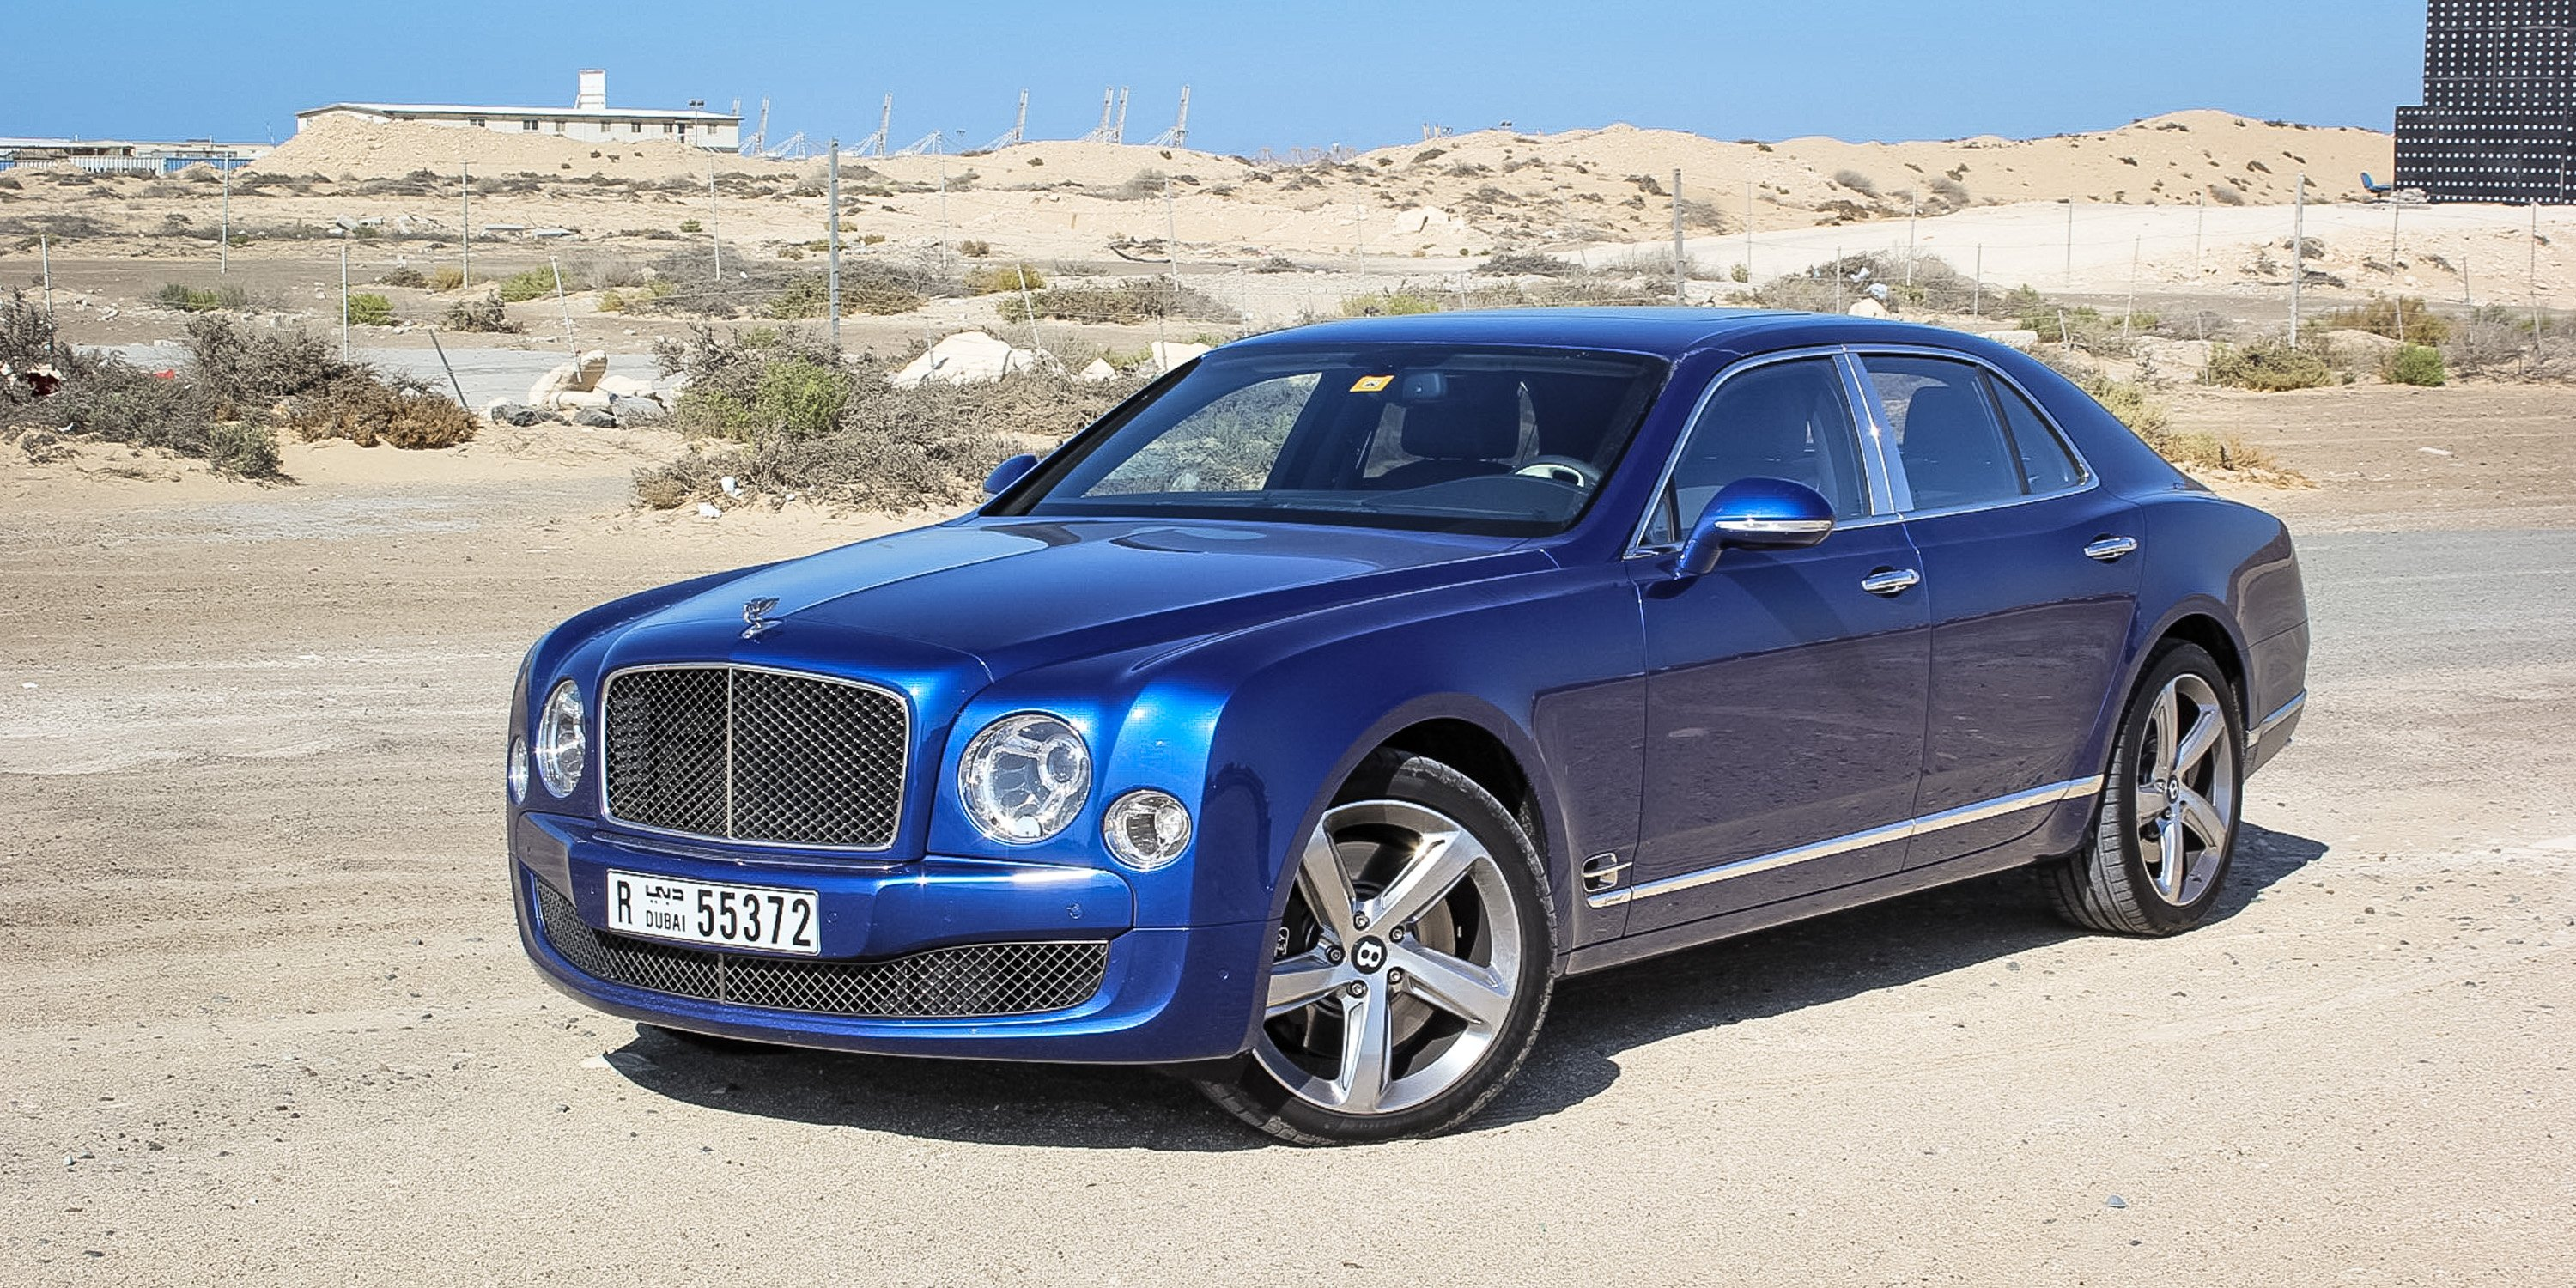 2016 bentley mulsanne speed review abu dhabi to dubai. Black Bedroom Furniture Sets. Home Design Ideas